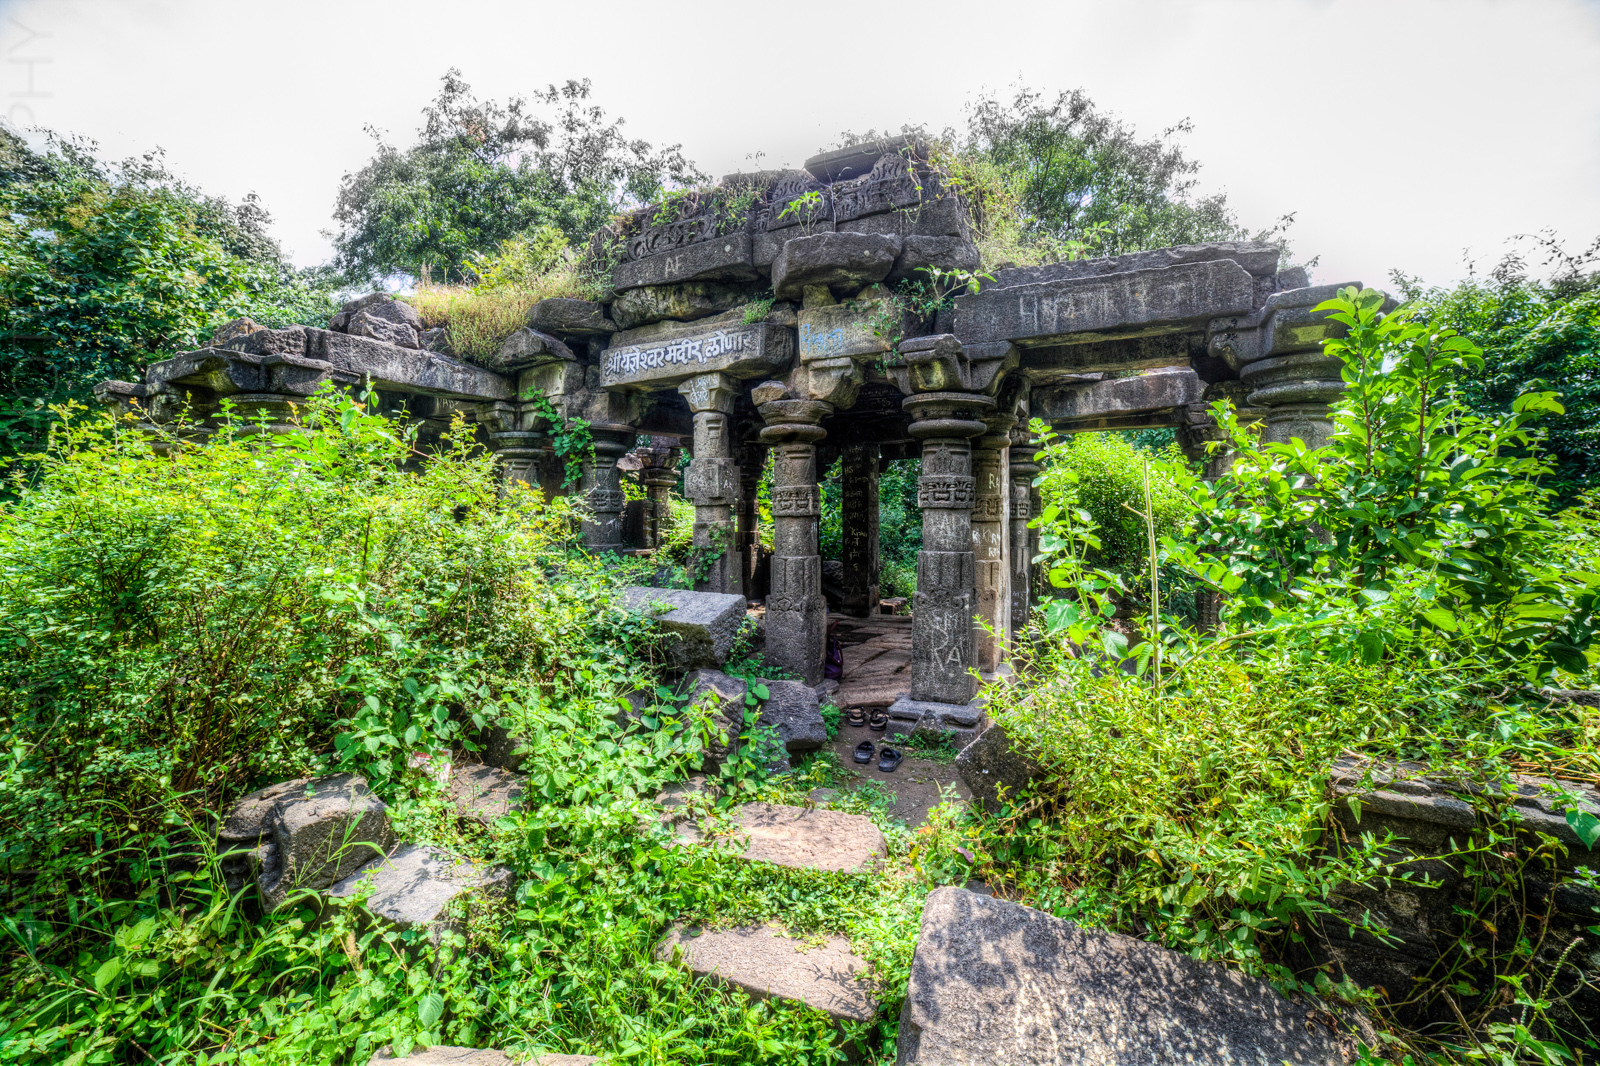 Temple ruins, at the Lonar lake